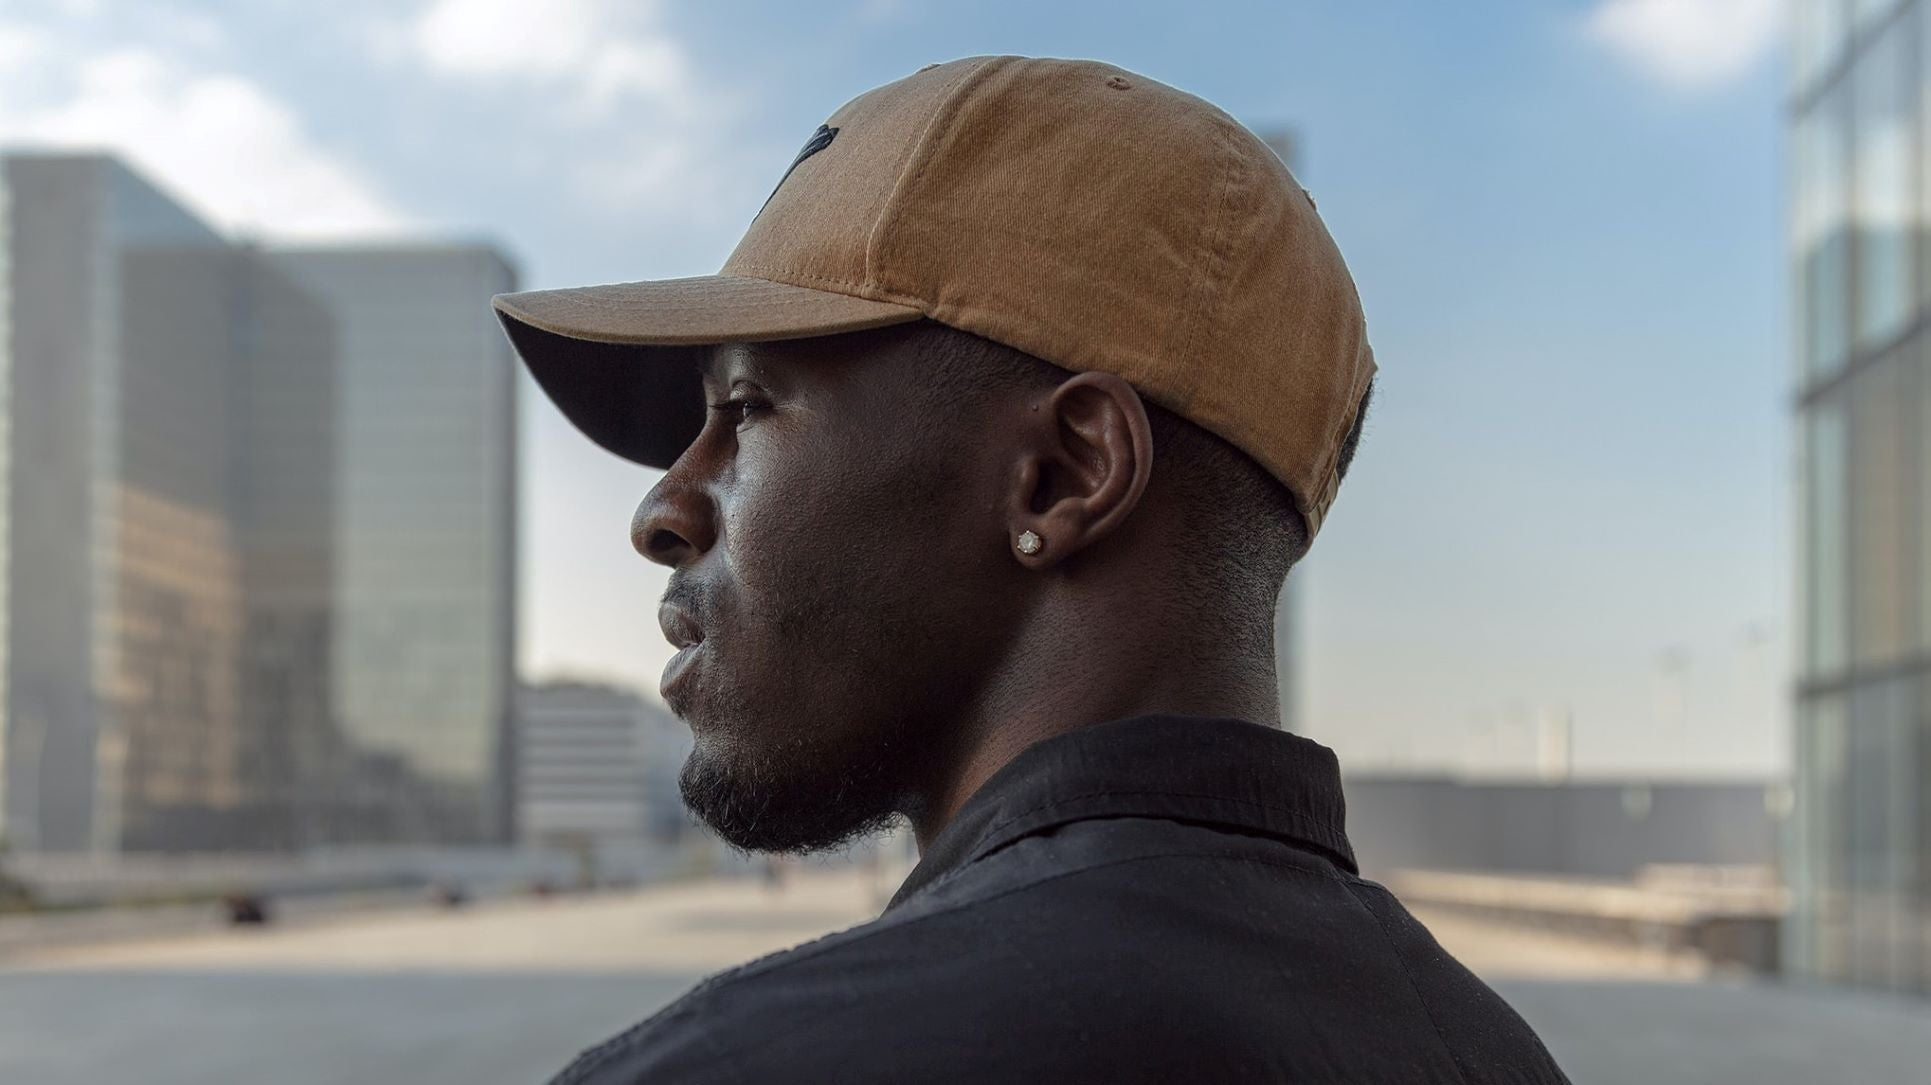 a dark man wearing a cap hat on city background, looking bald